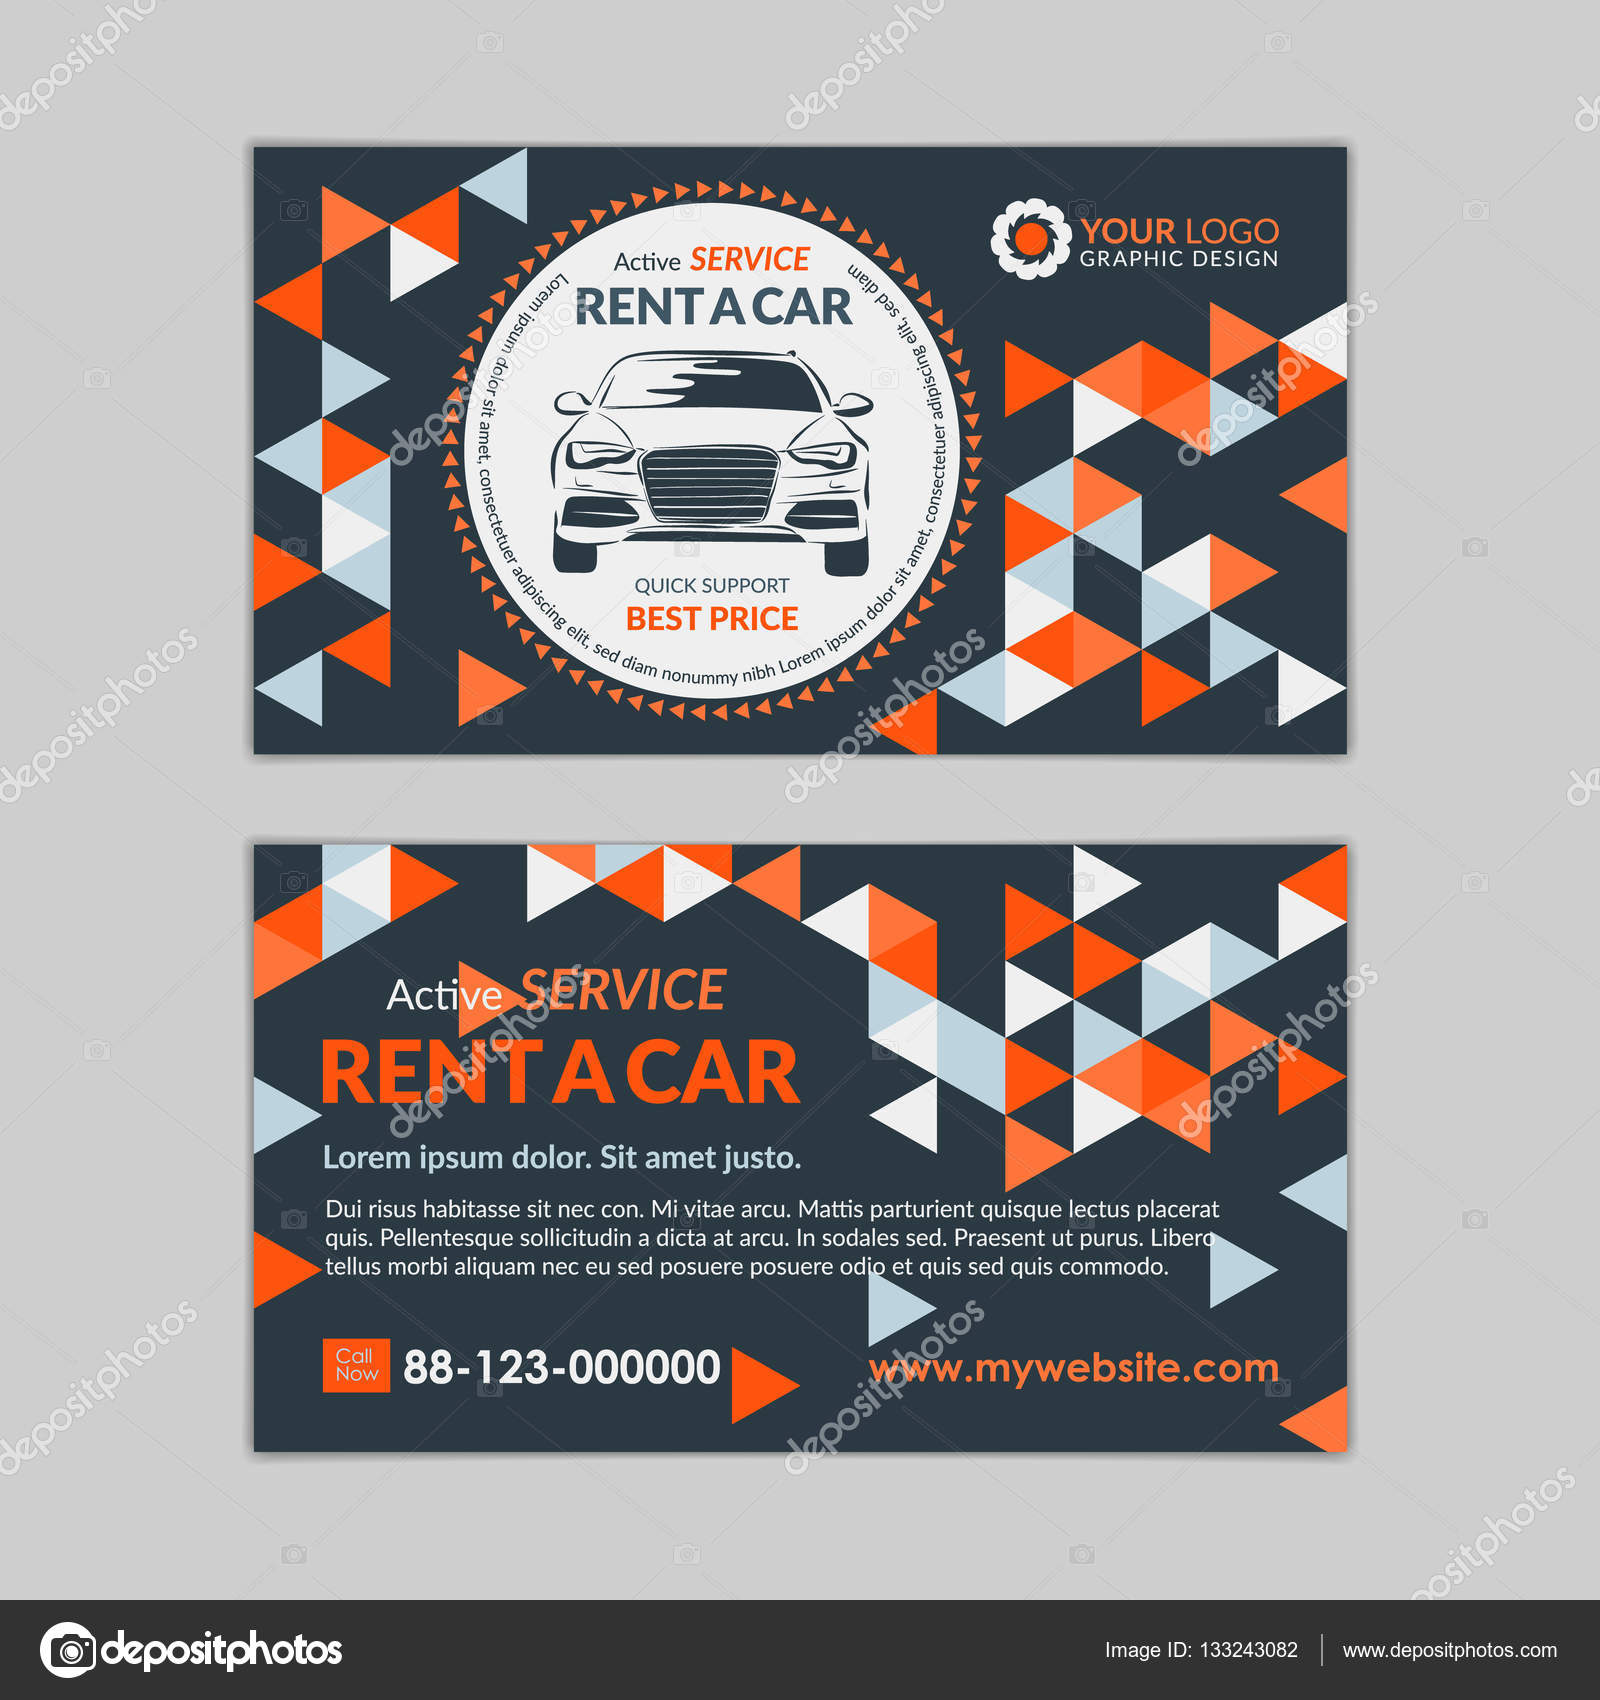 Rent a car business card template with abstract geometry pattern rent a car business card template with abstract geometry pattern triangle backgrounds auto service mockup create your own business cards reheart Image collections